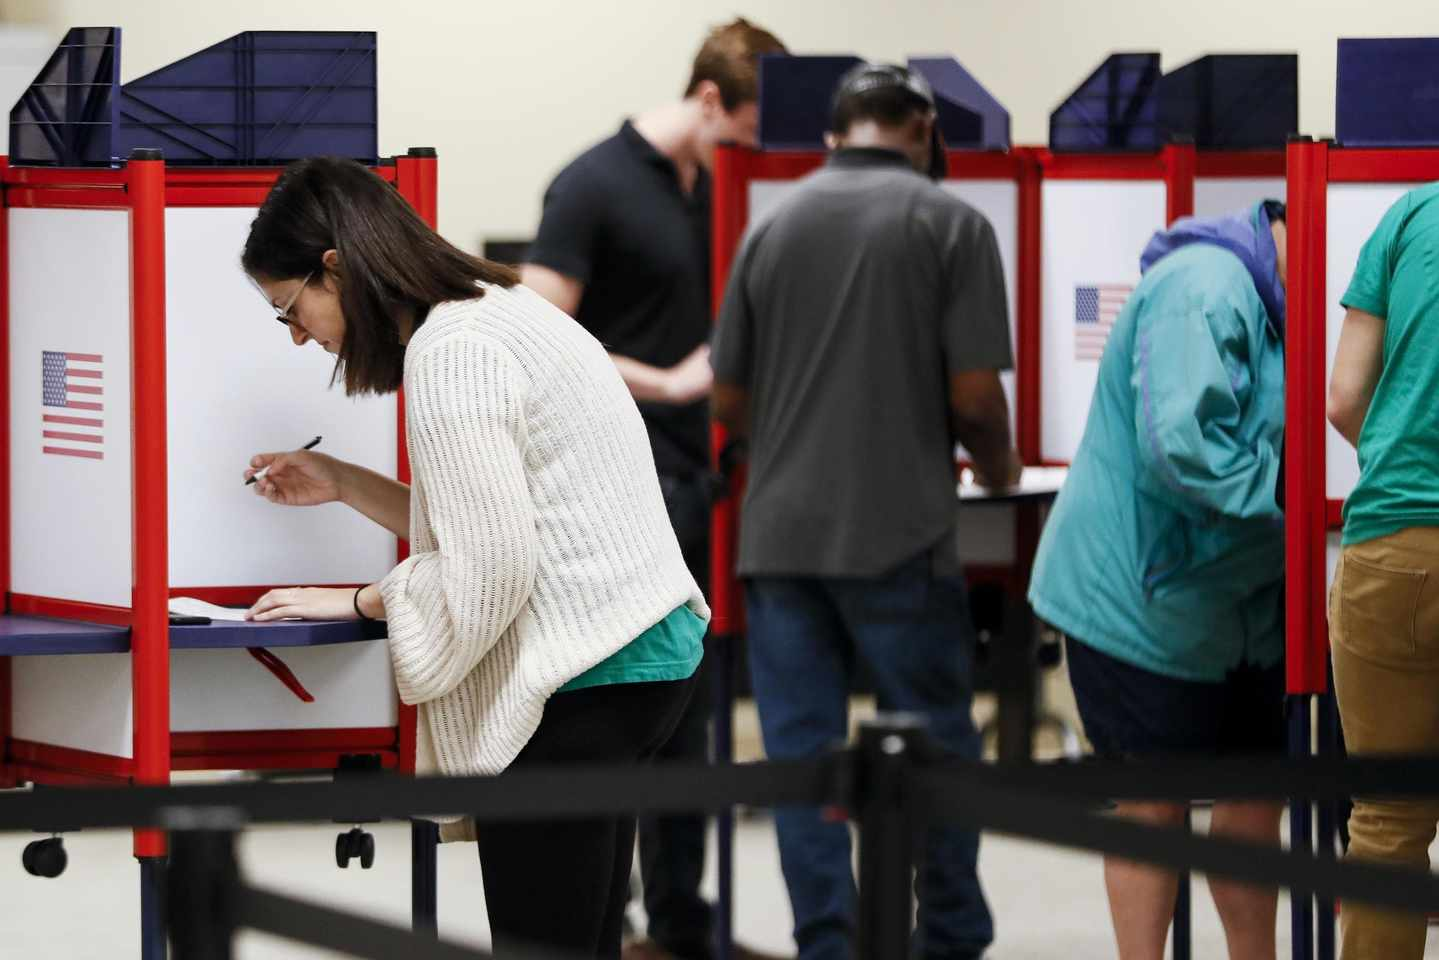 What Is a Wave Election, Anyway?